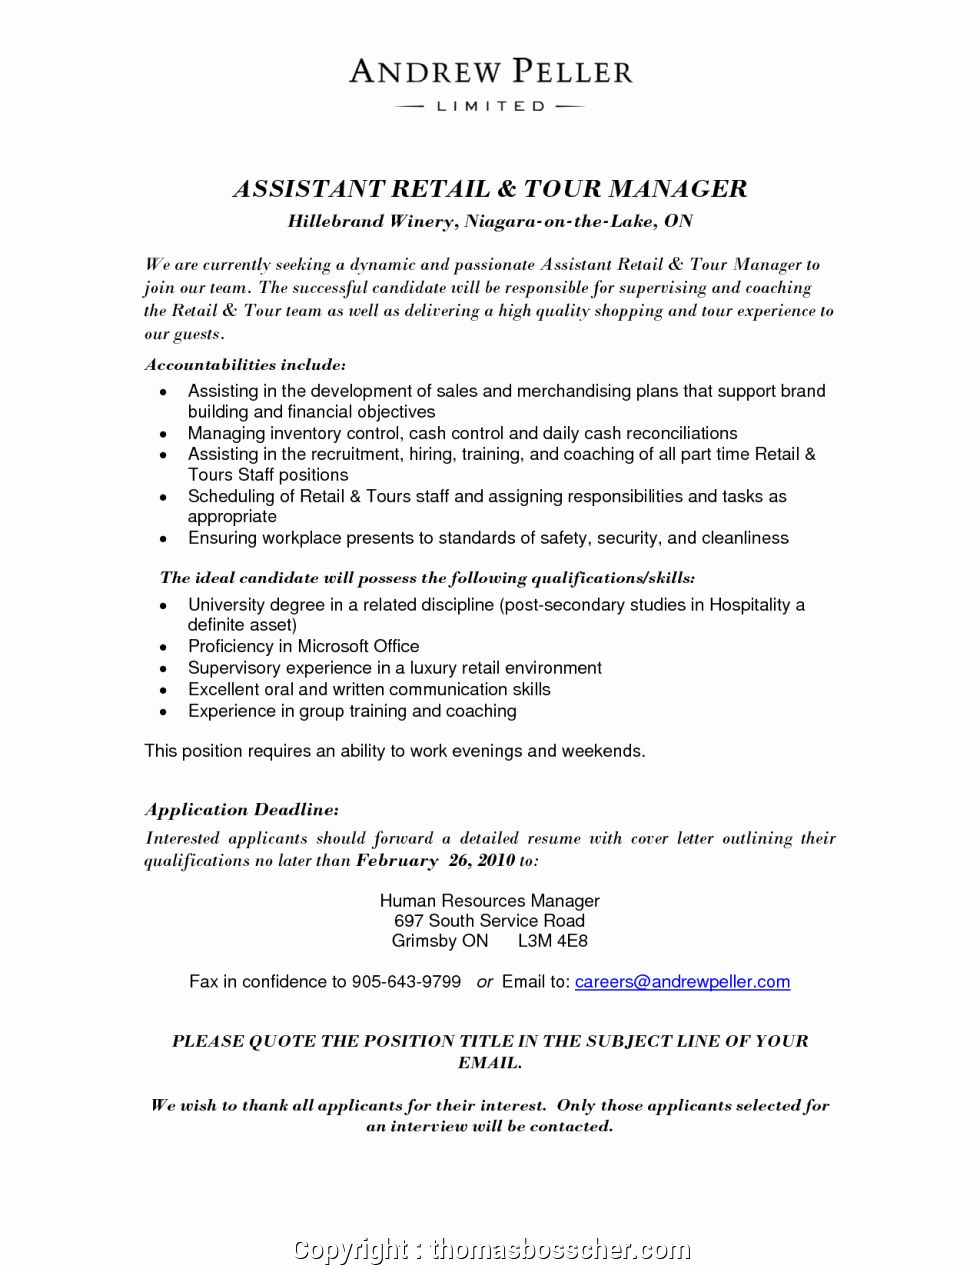 23 assistant Manager Resume Description (With images